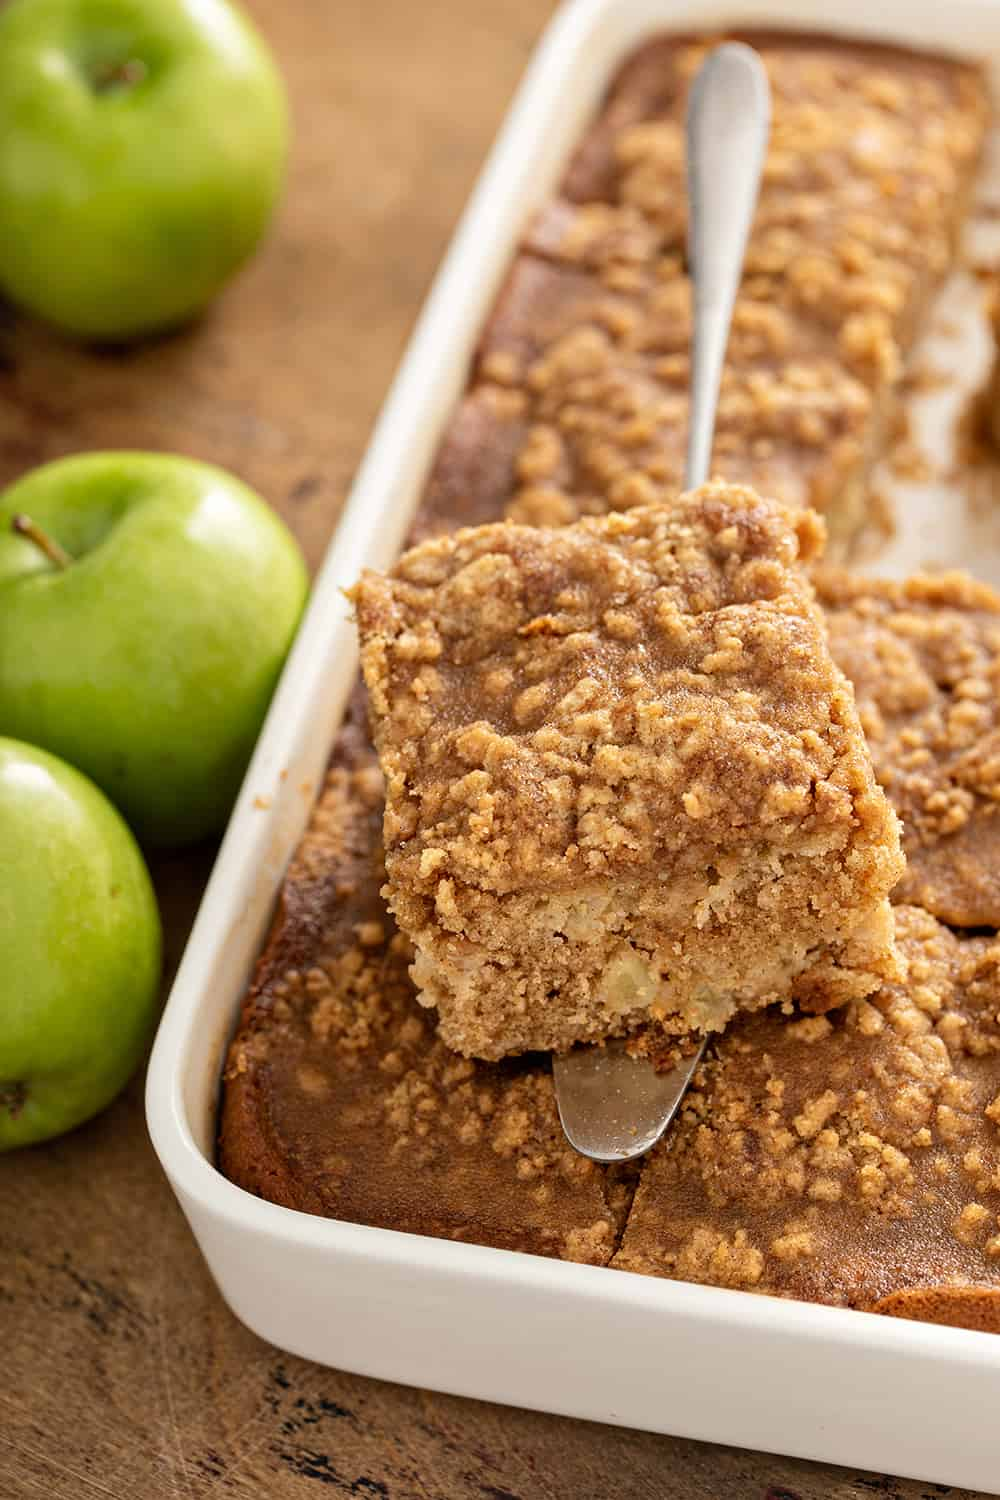 Cake server holding a slice of apple coffee cake over a pan of coffee cake